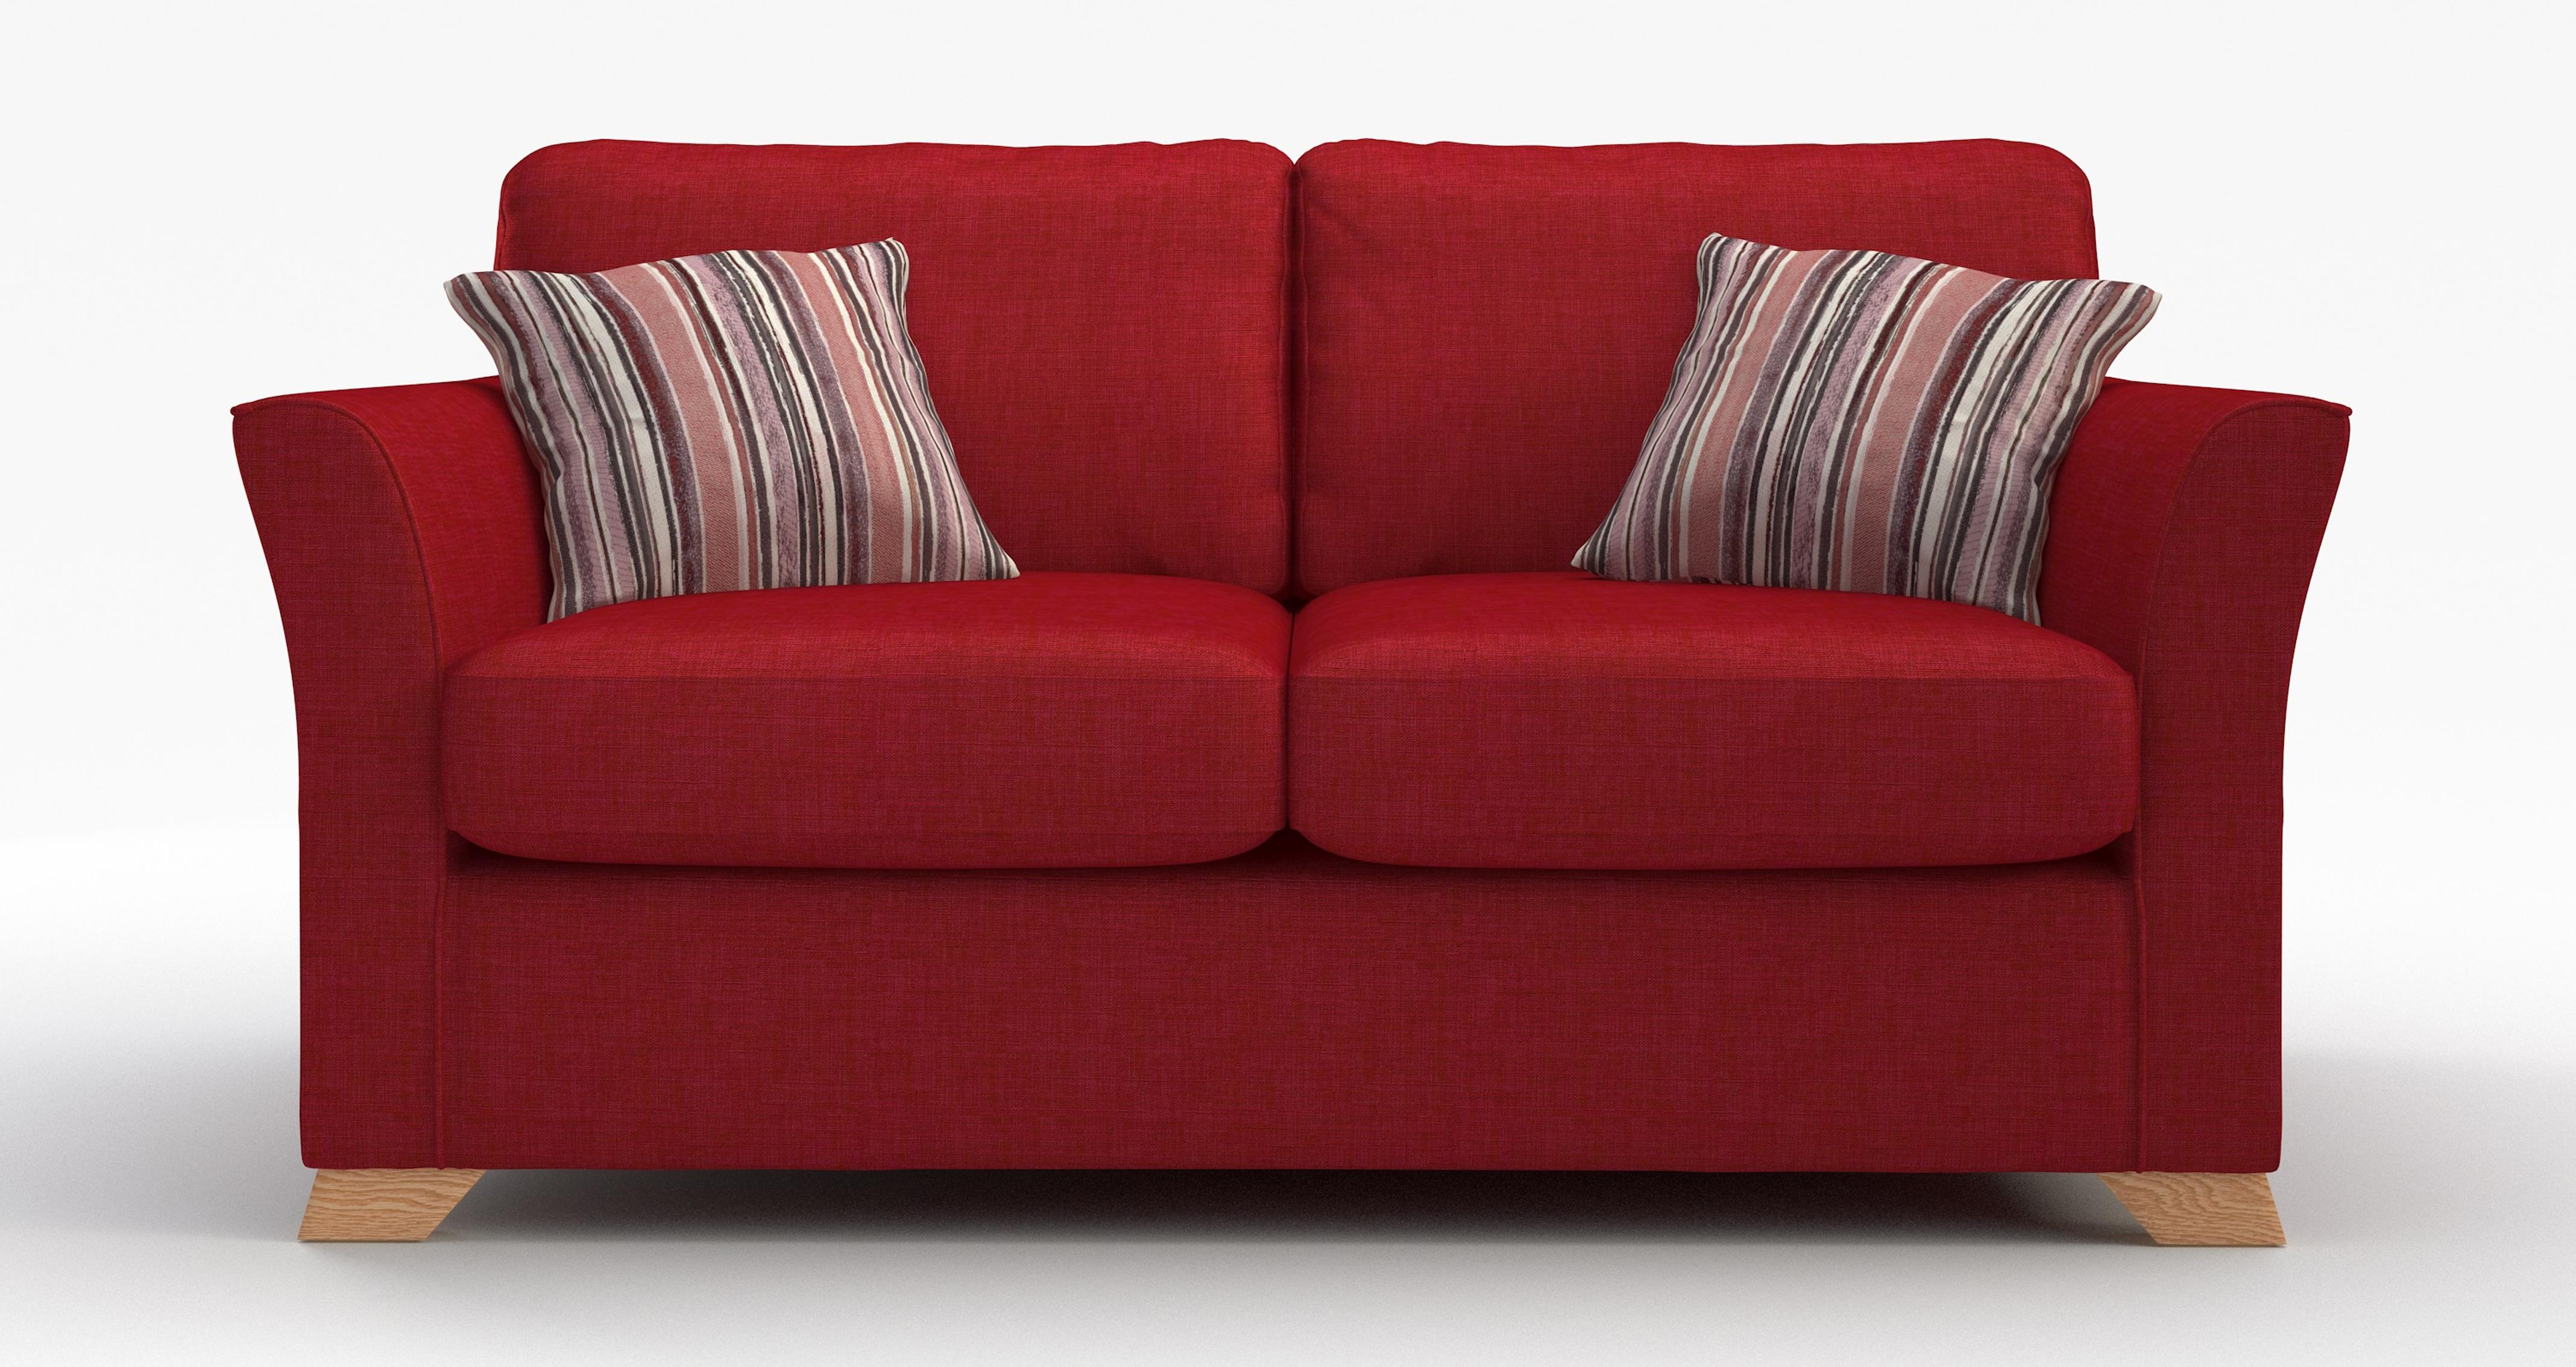 Dfs Zuma Red Fabric Range 3 Seater 2 Str Sofa Bed